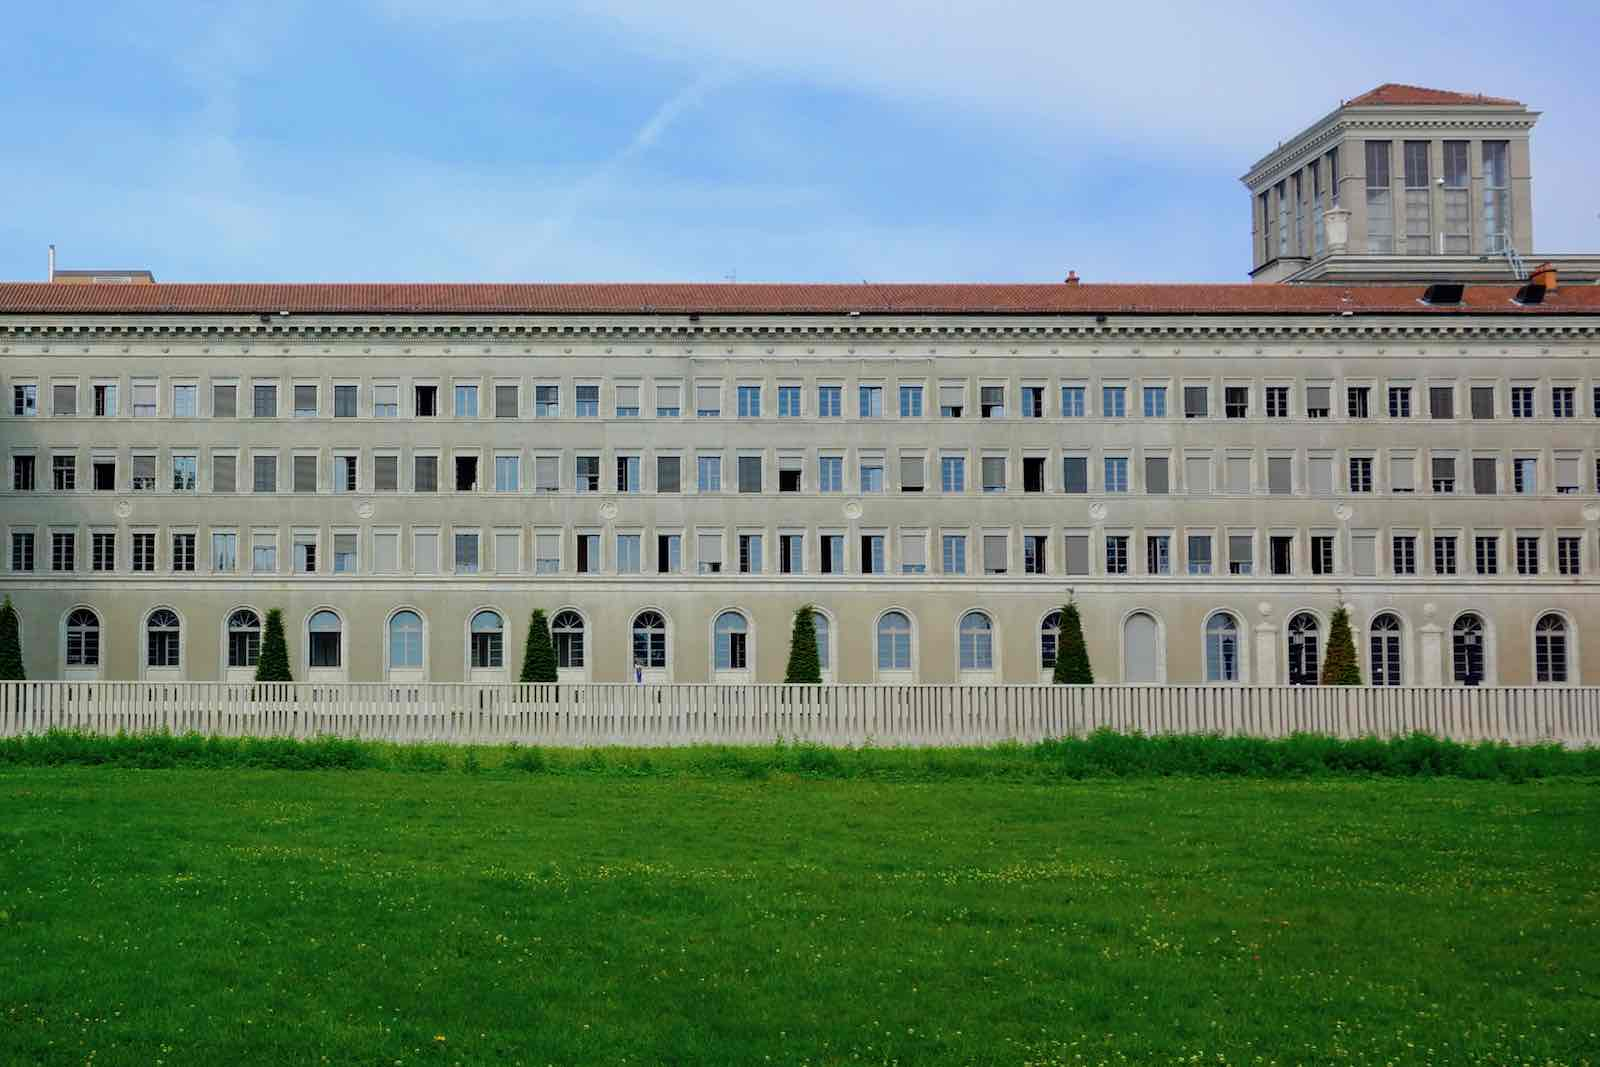 WTO headquarters in Geneva (Photo: Nicolas Nova/Flickr)